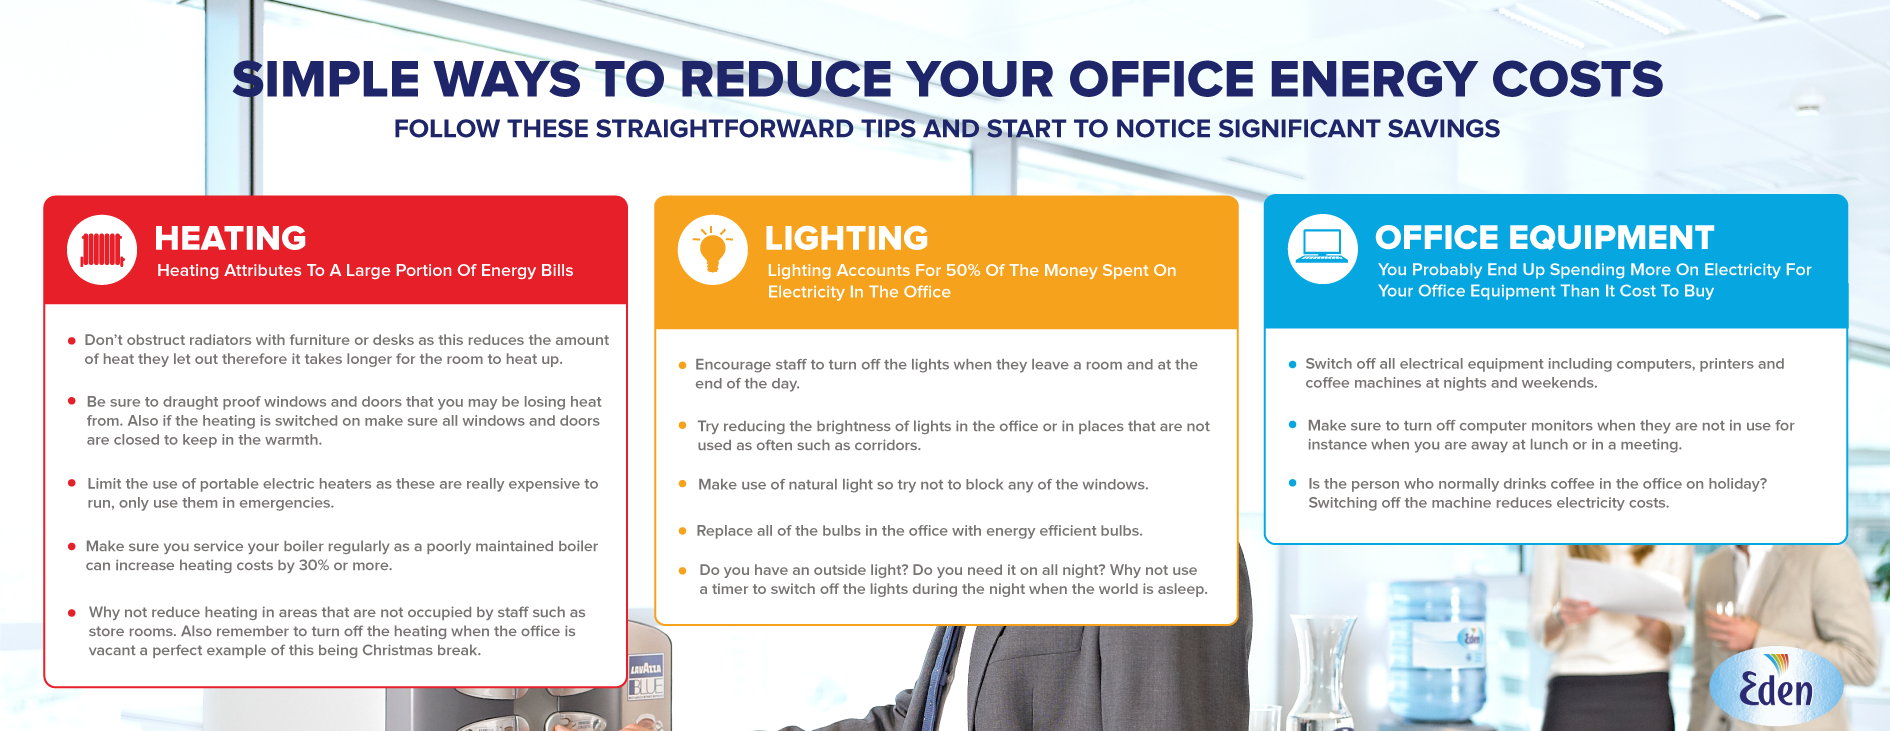 Simple Ways To Reduce Your Office Energy Costs Eden Springs